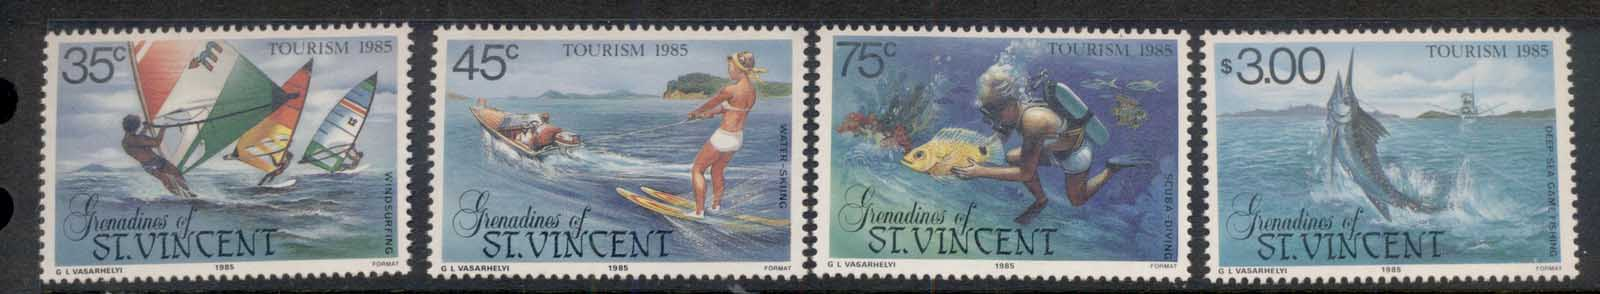 St Vincent Grenadines 1985 Tourism MUH